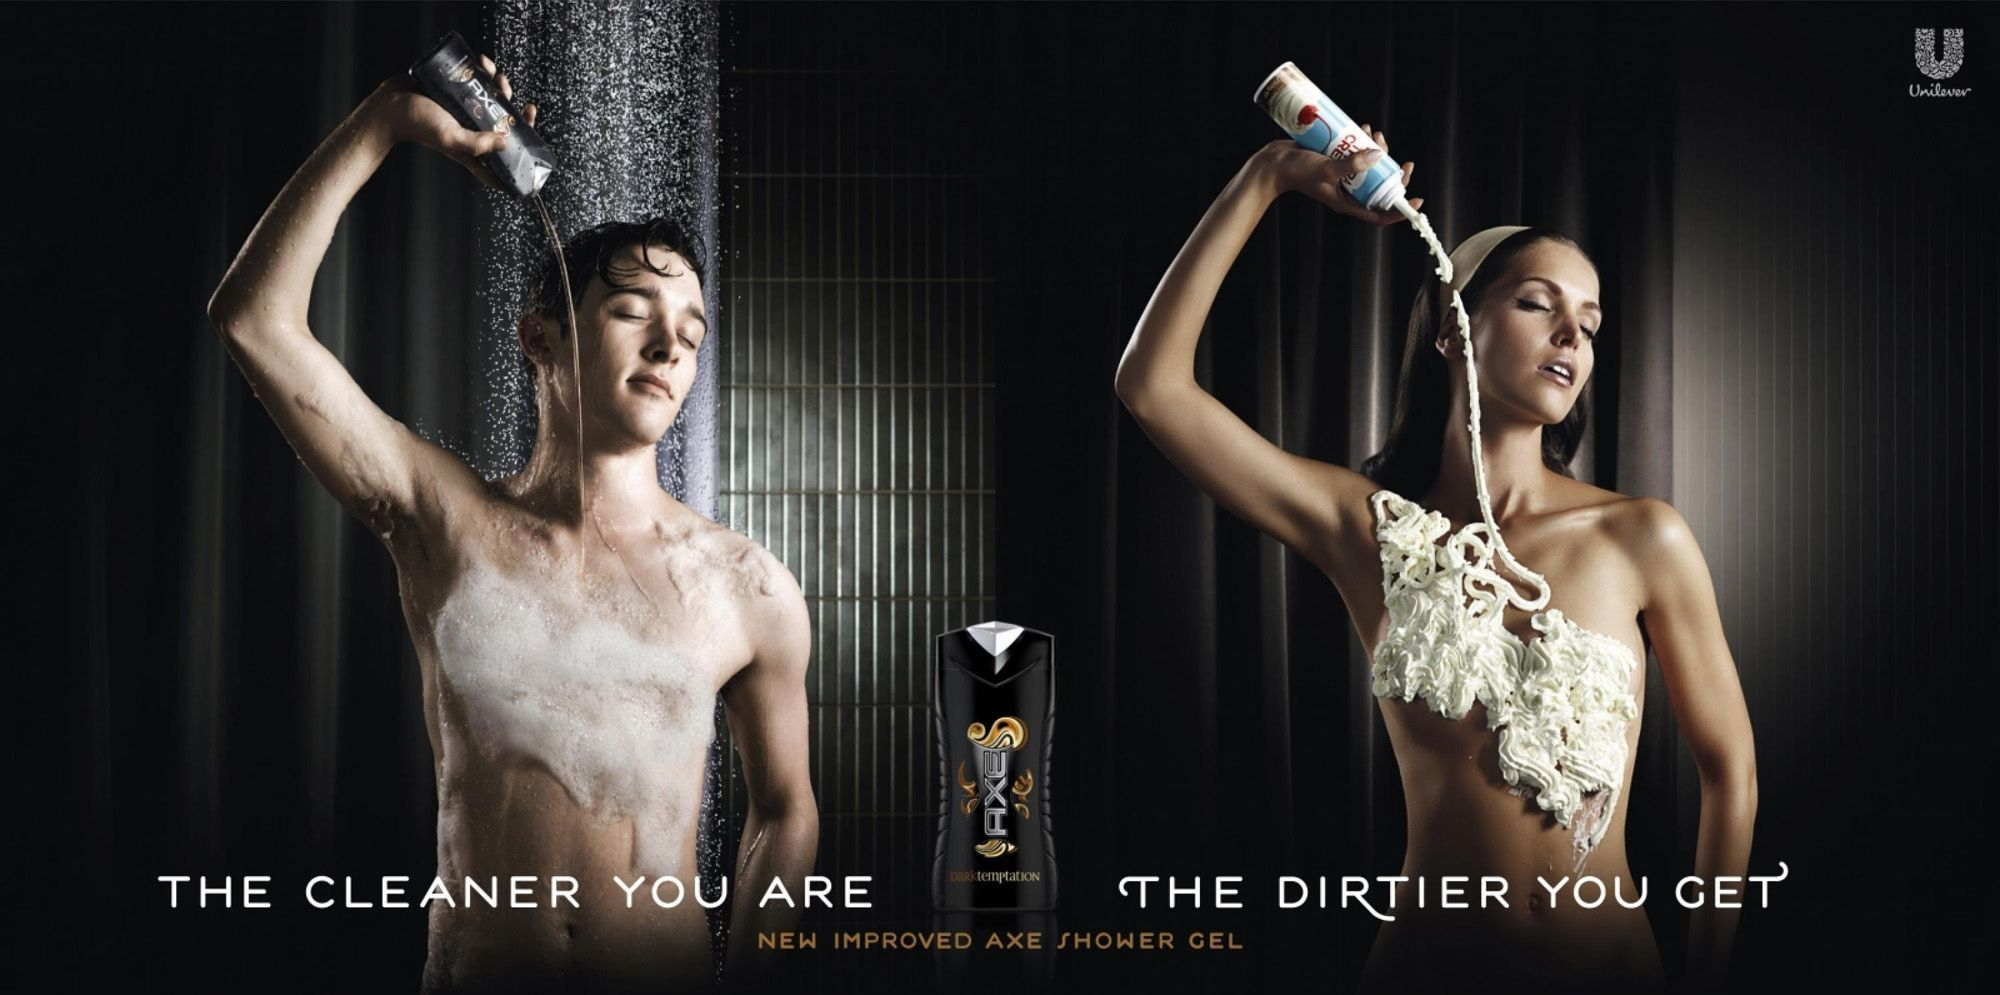 10 Shocking Facts About The Most Successful Ad Campaigns